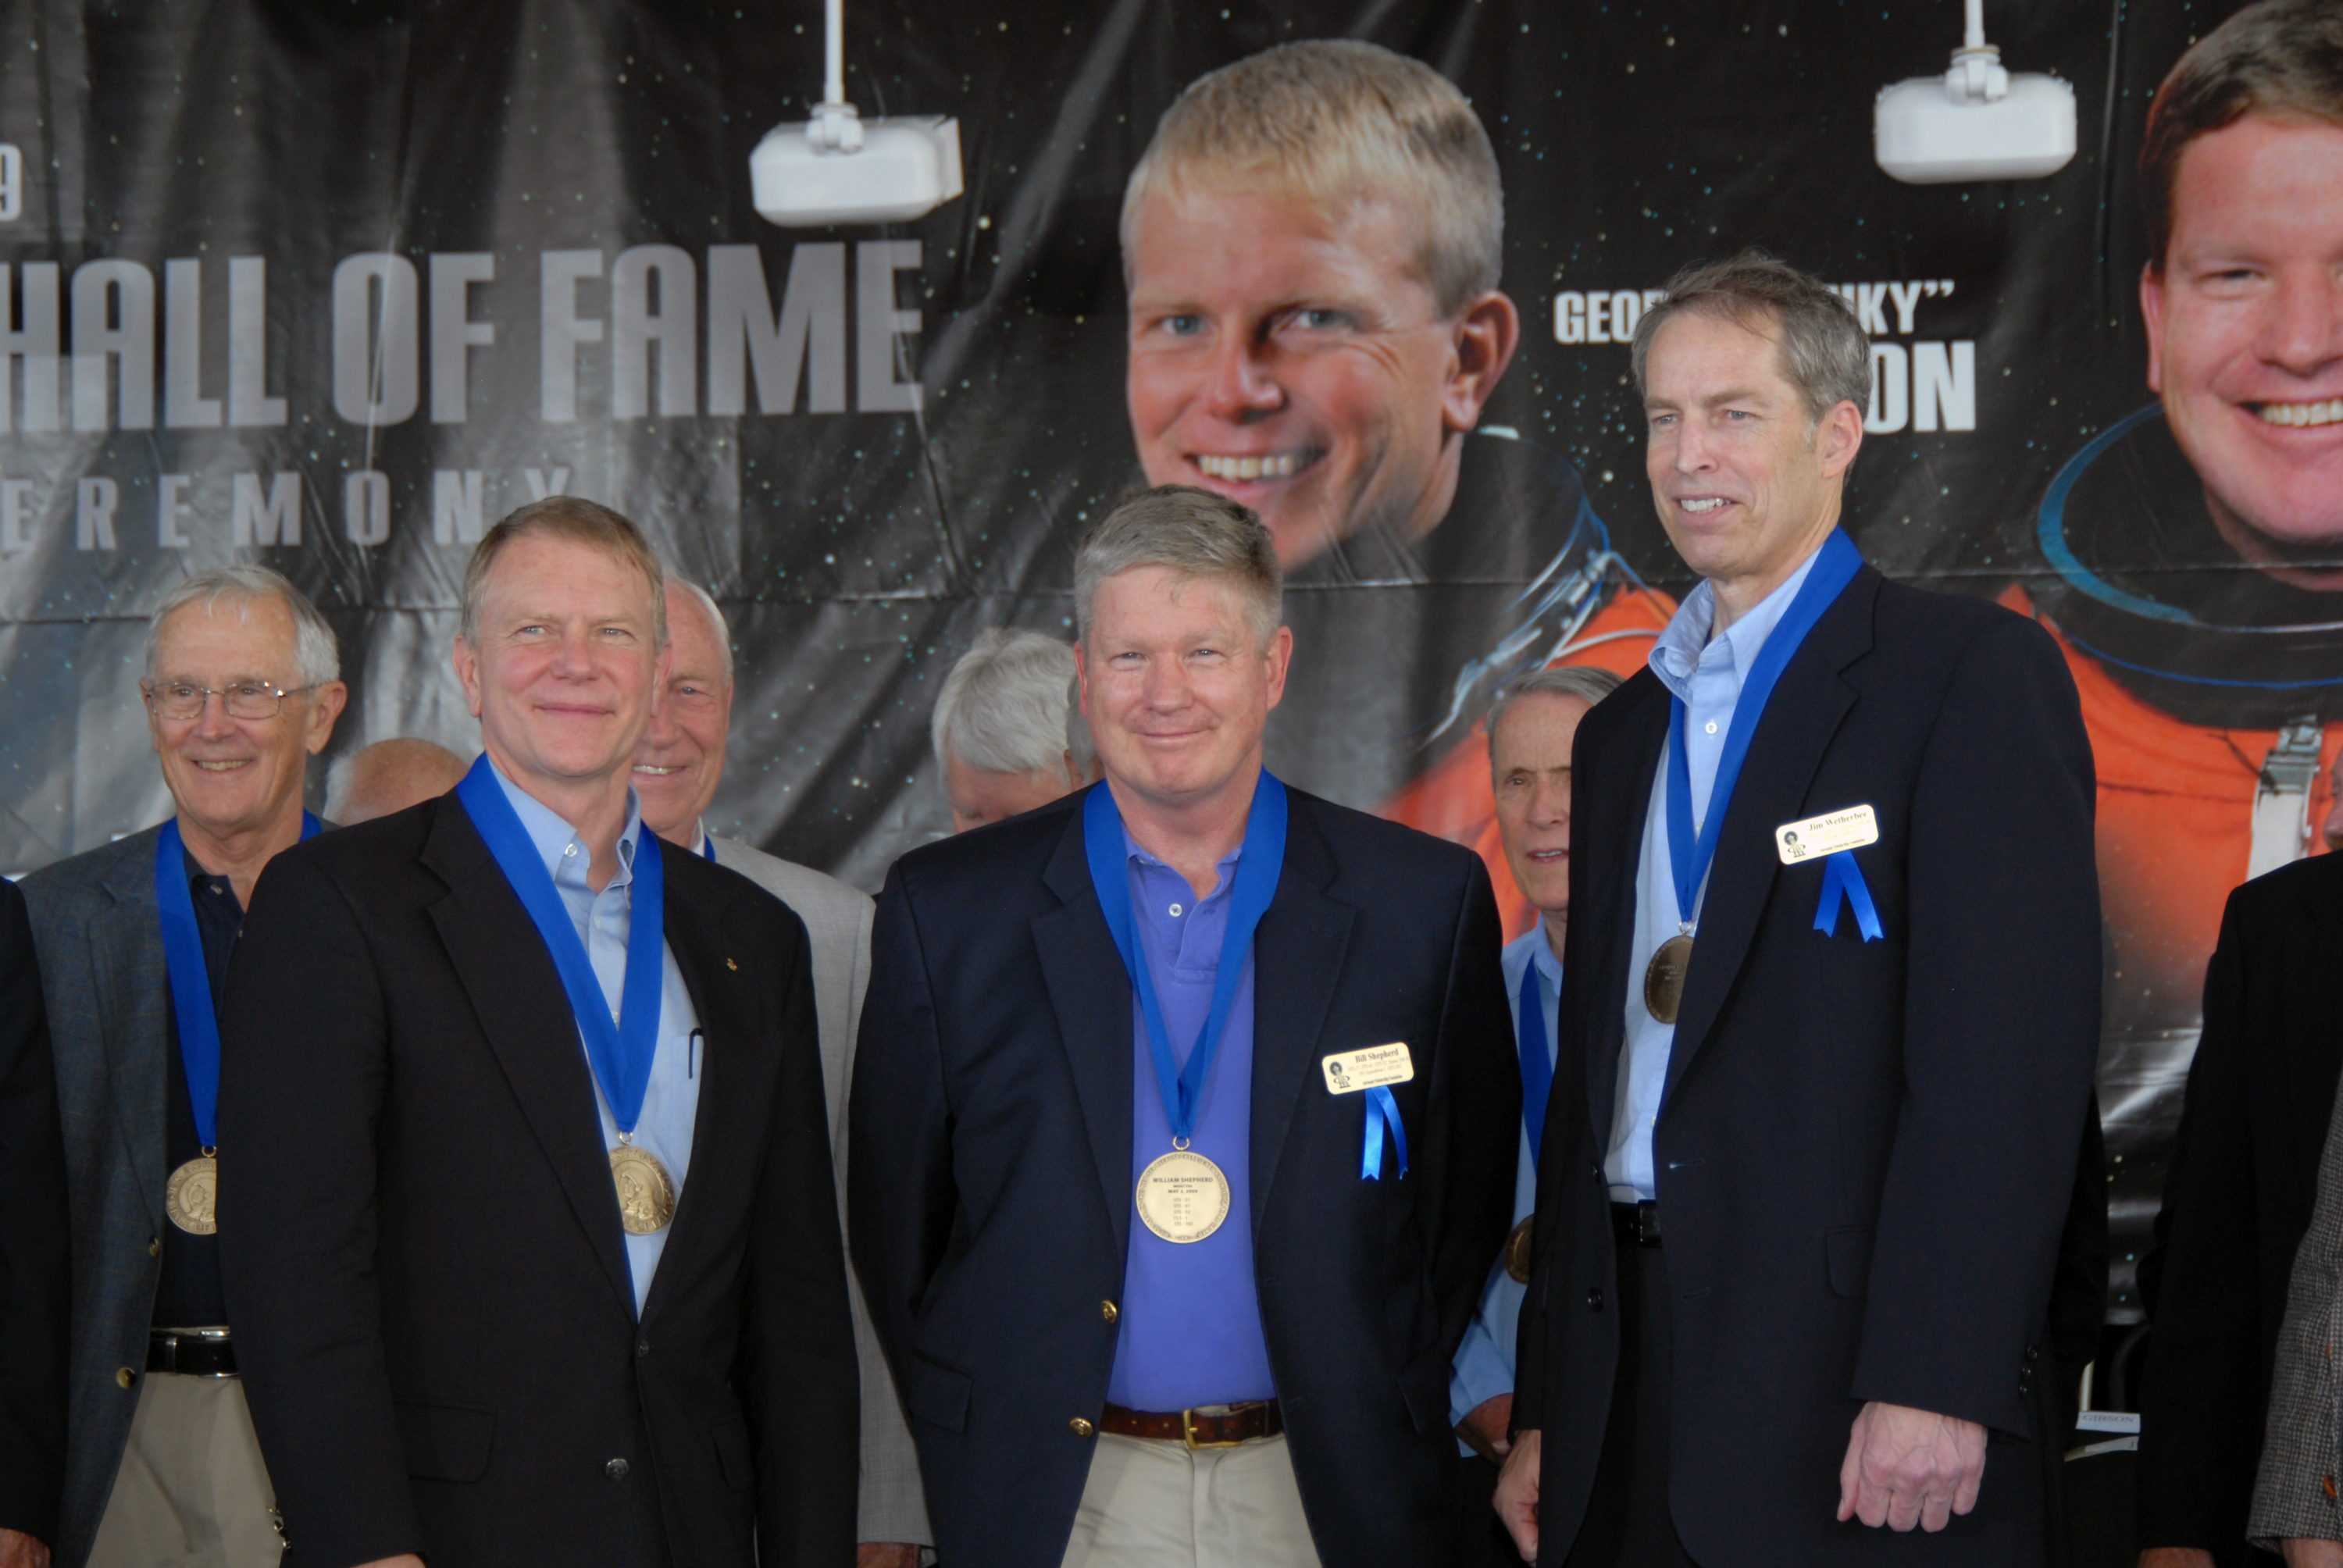 astronaut hall of fame members - photo #21